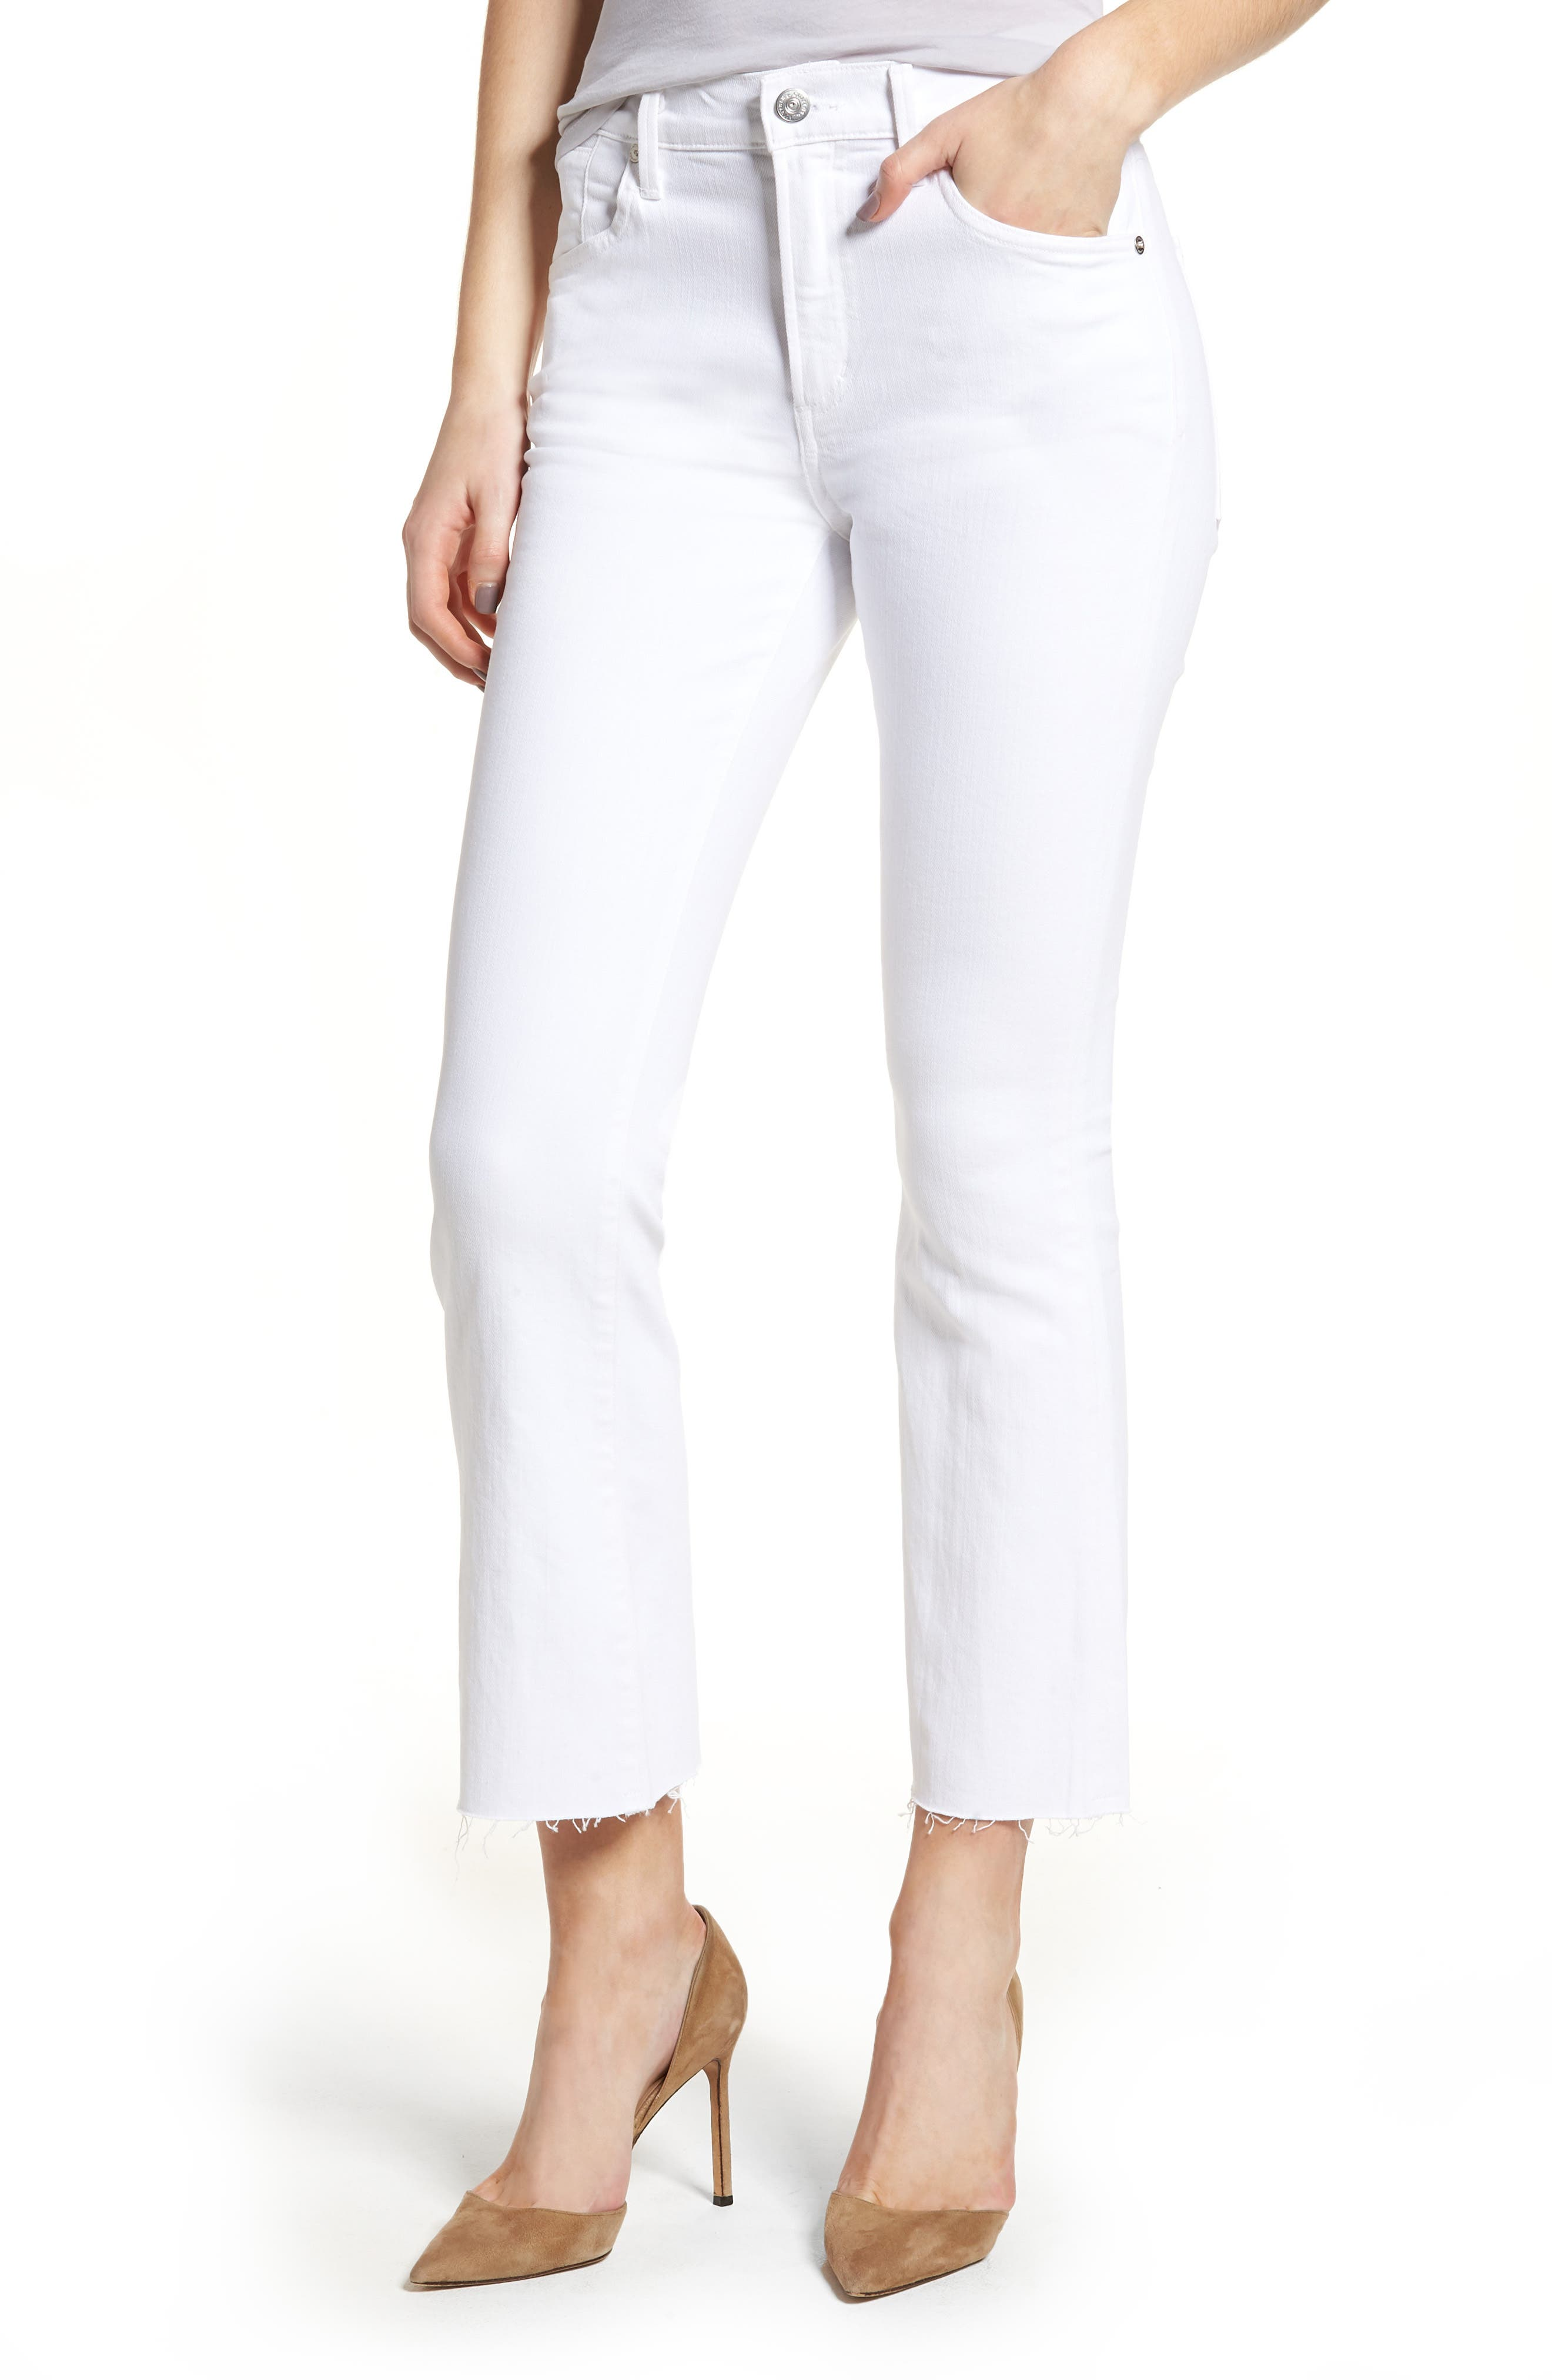 CITIZENS OF HUMANITY Fleetwood Crop Straight Leg Jeans, Main, color, 104